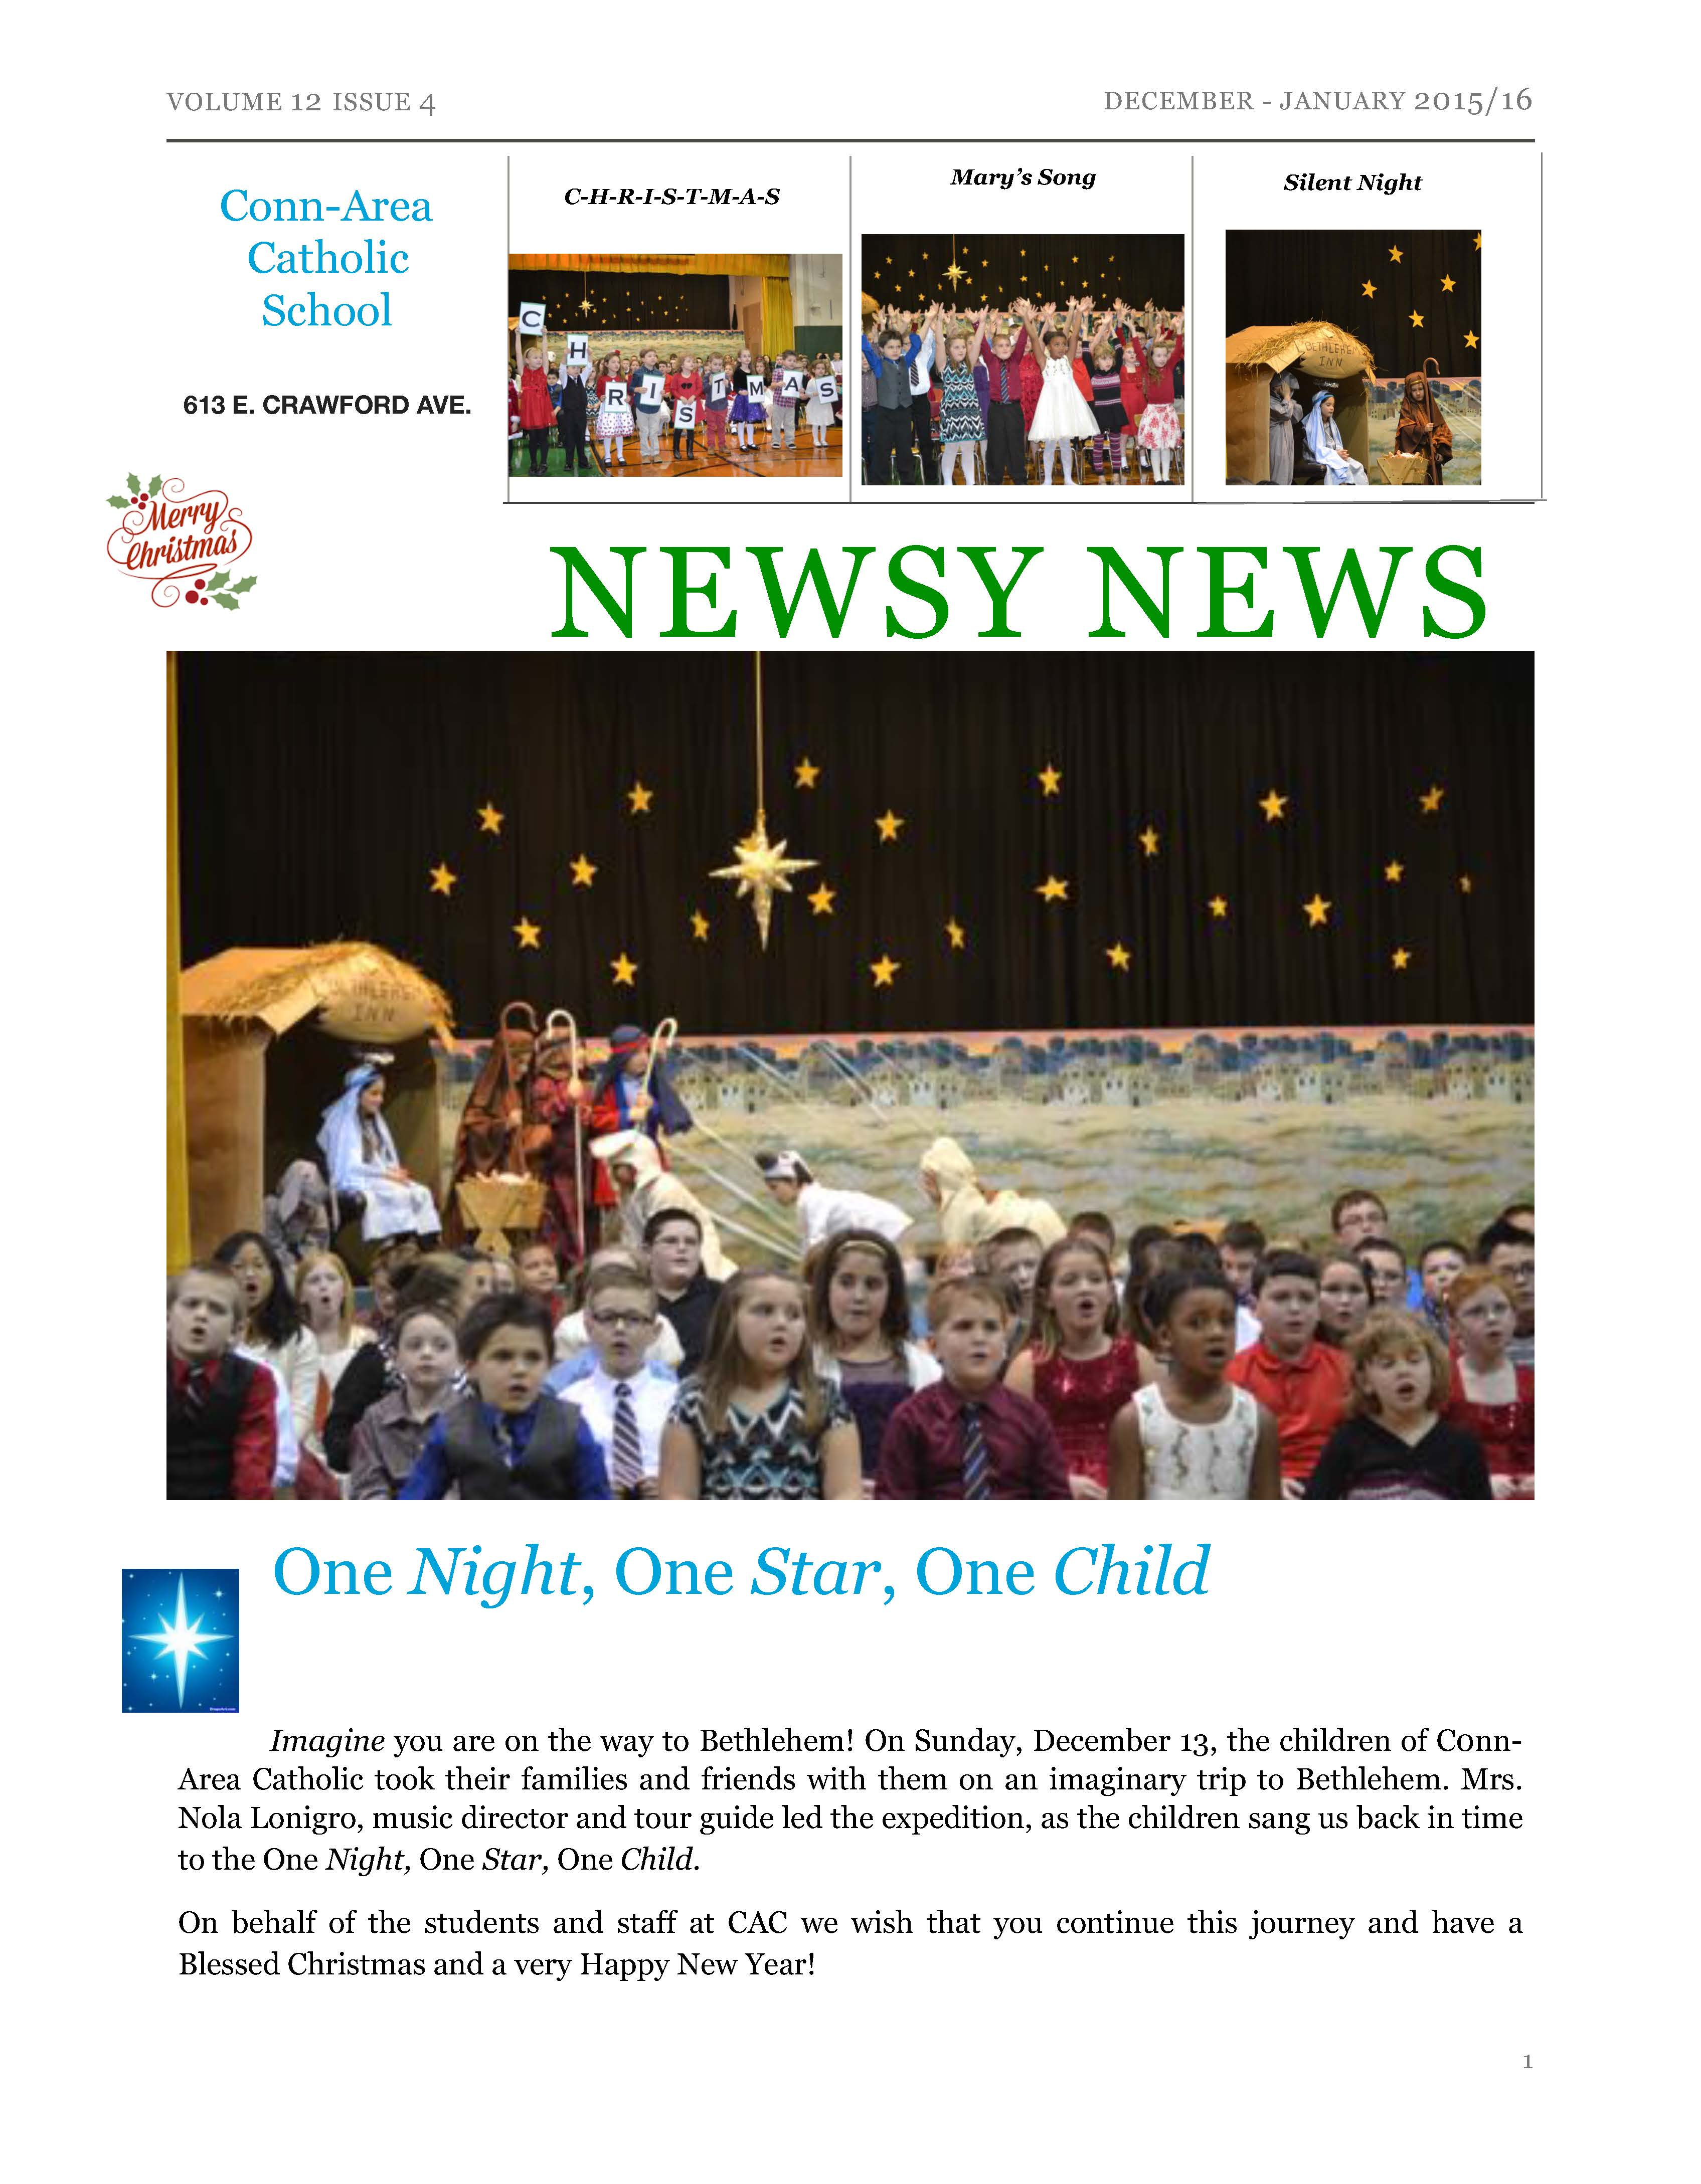 Newsy News - Dec. 2015/Jan. 2016